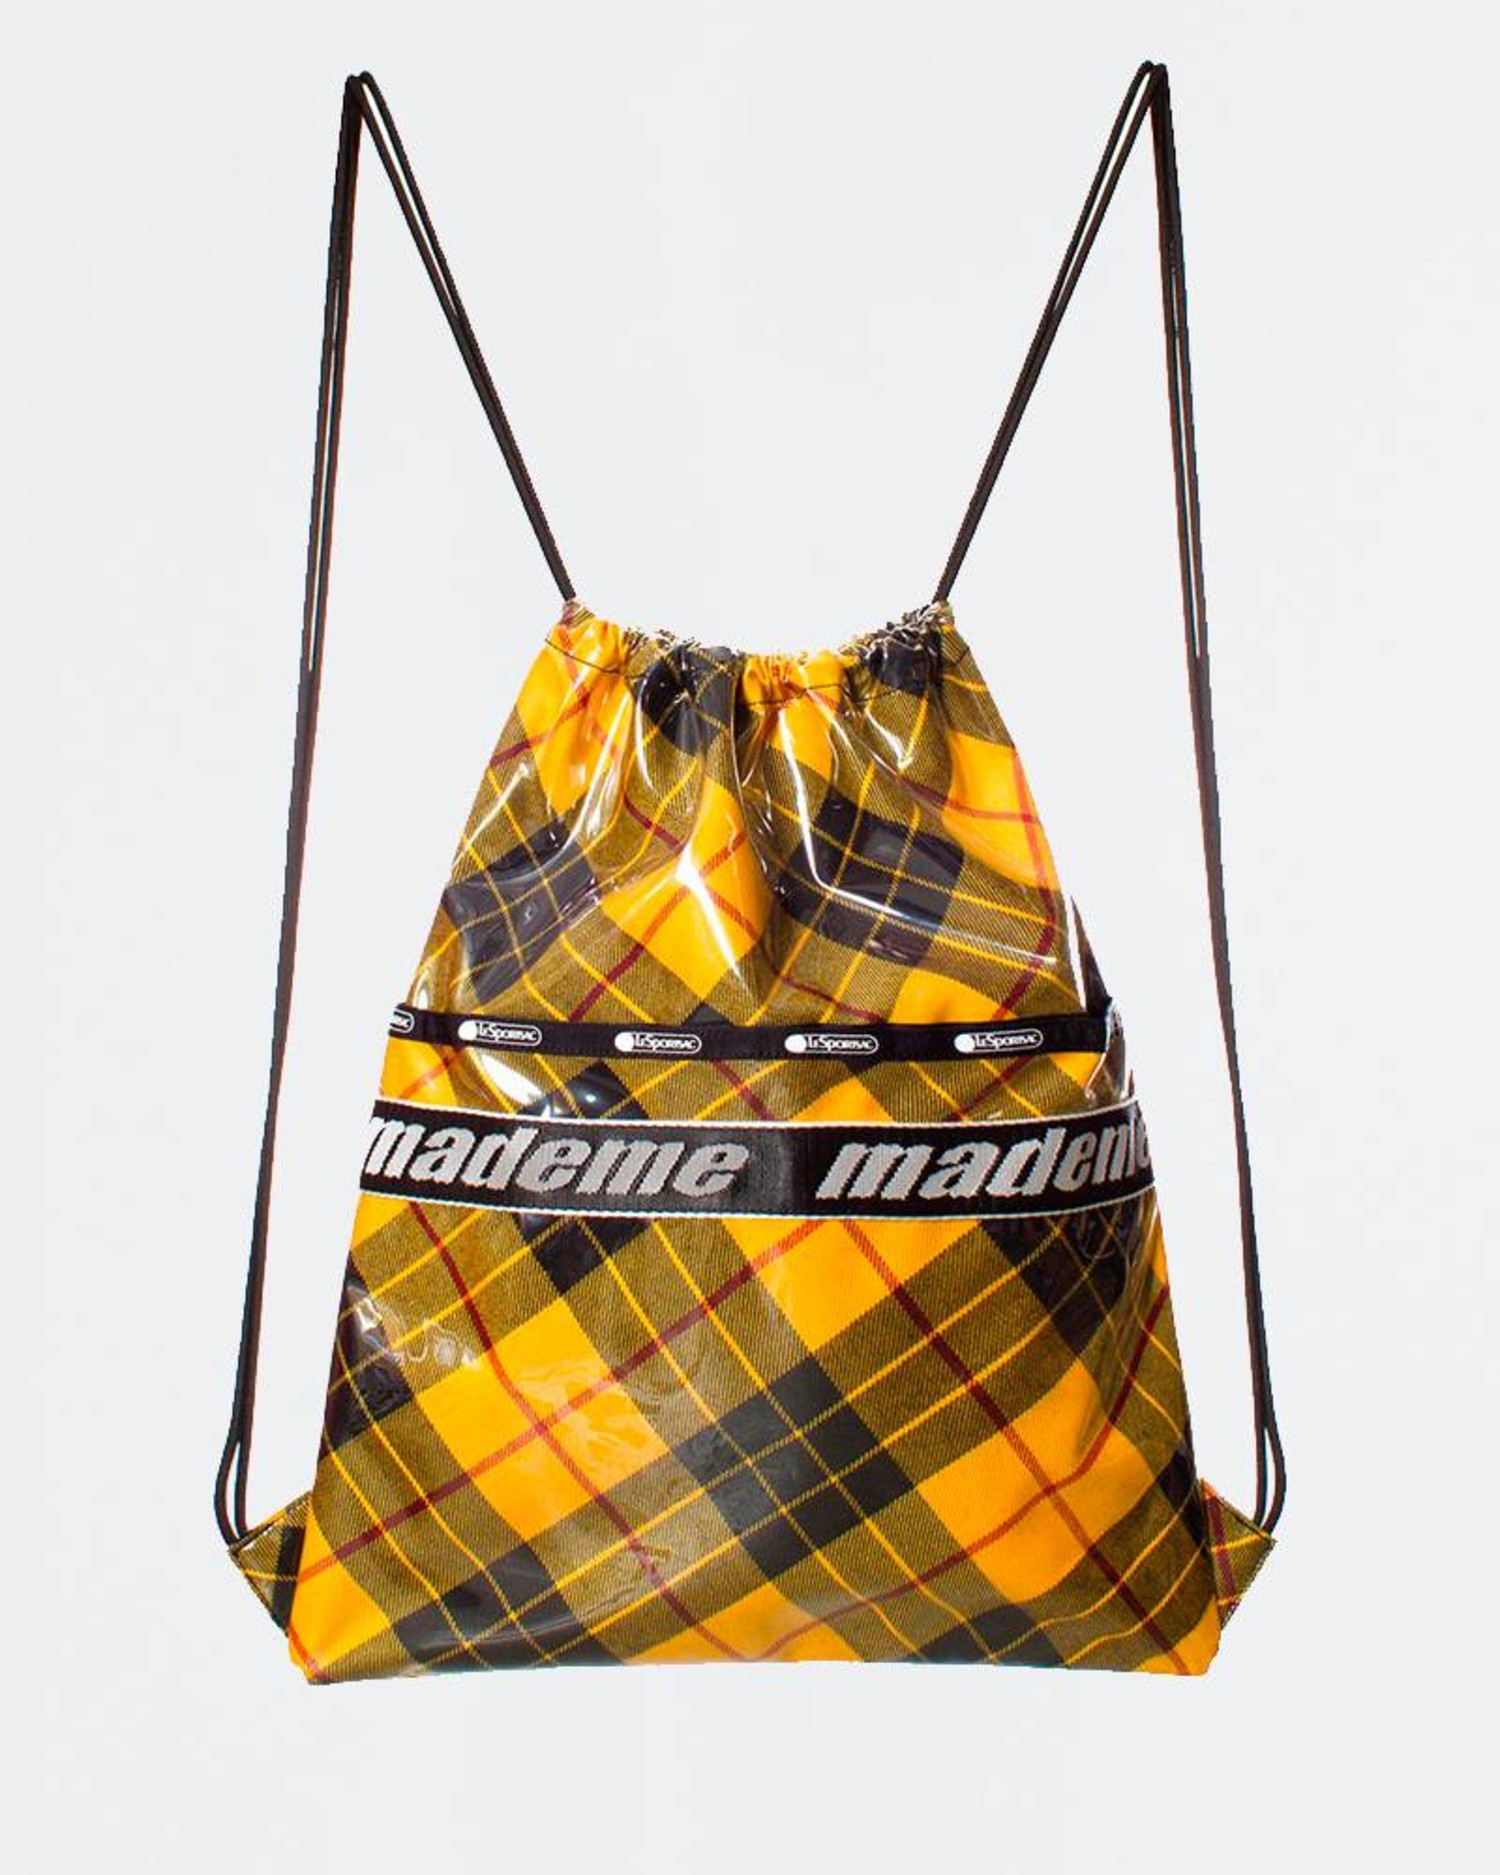 MadeMe x Lesportsac Drawstring Back Pack Yellow Plaid